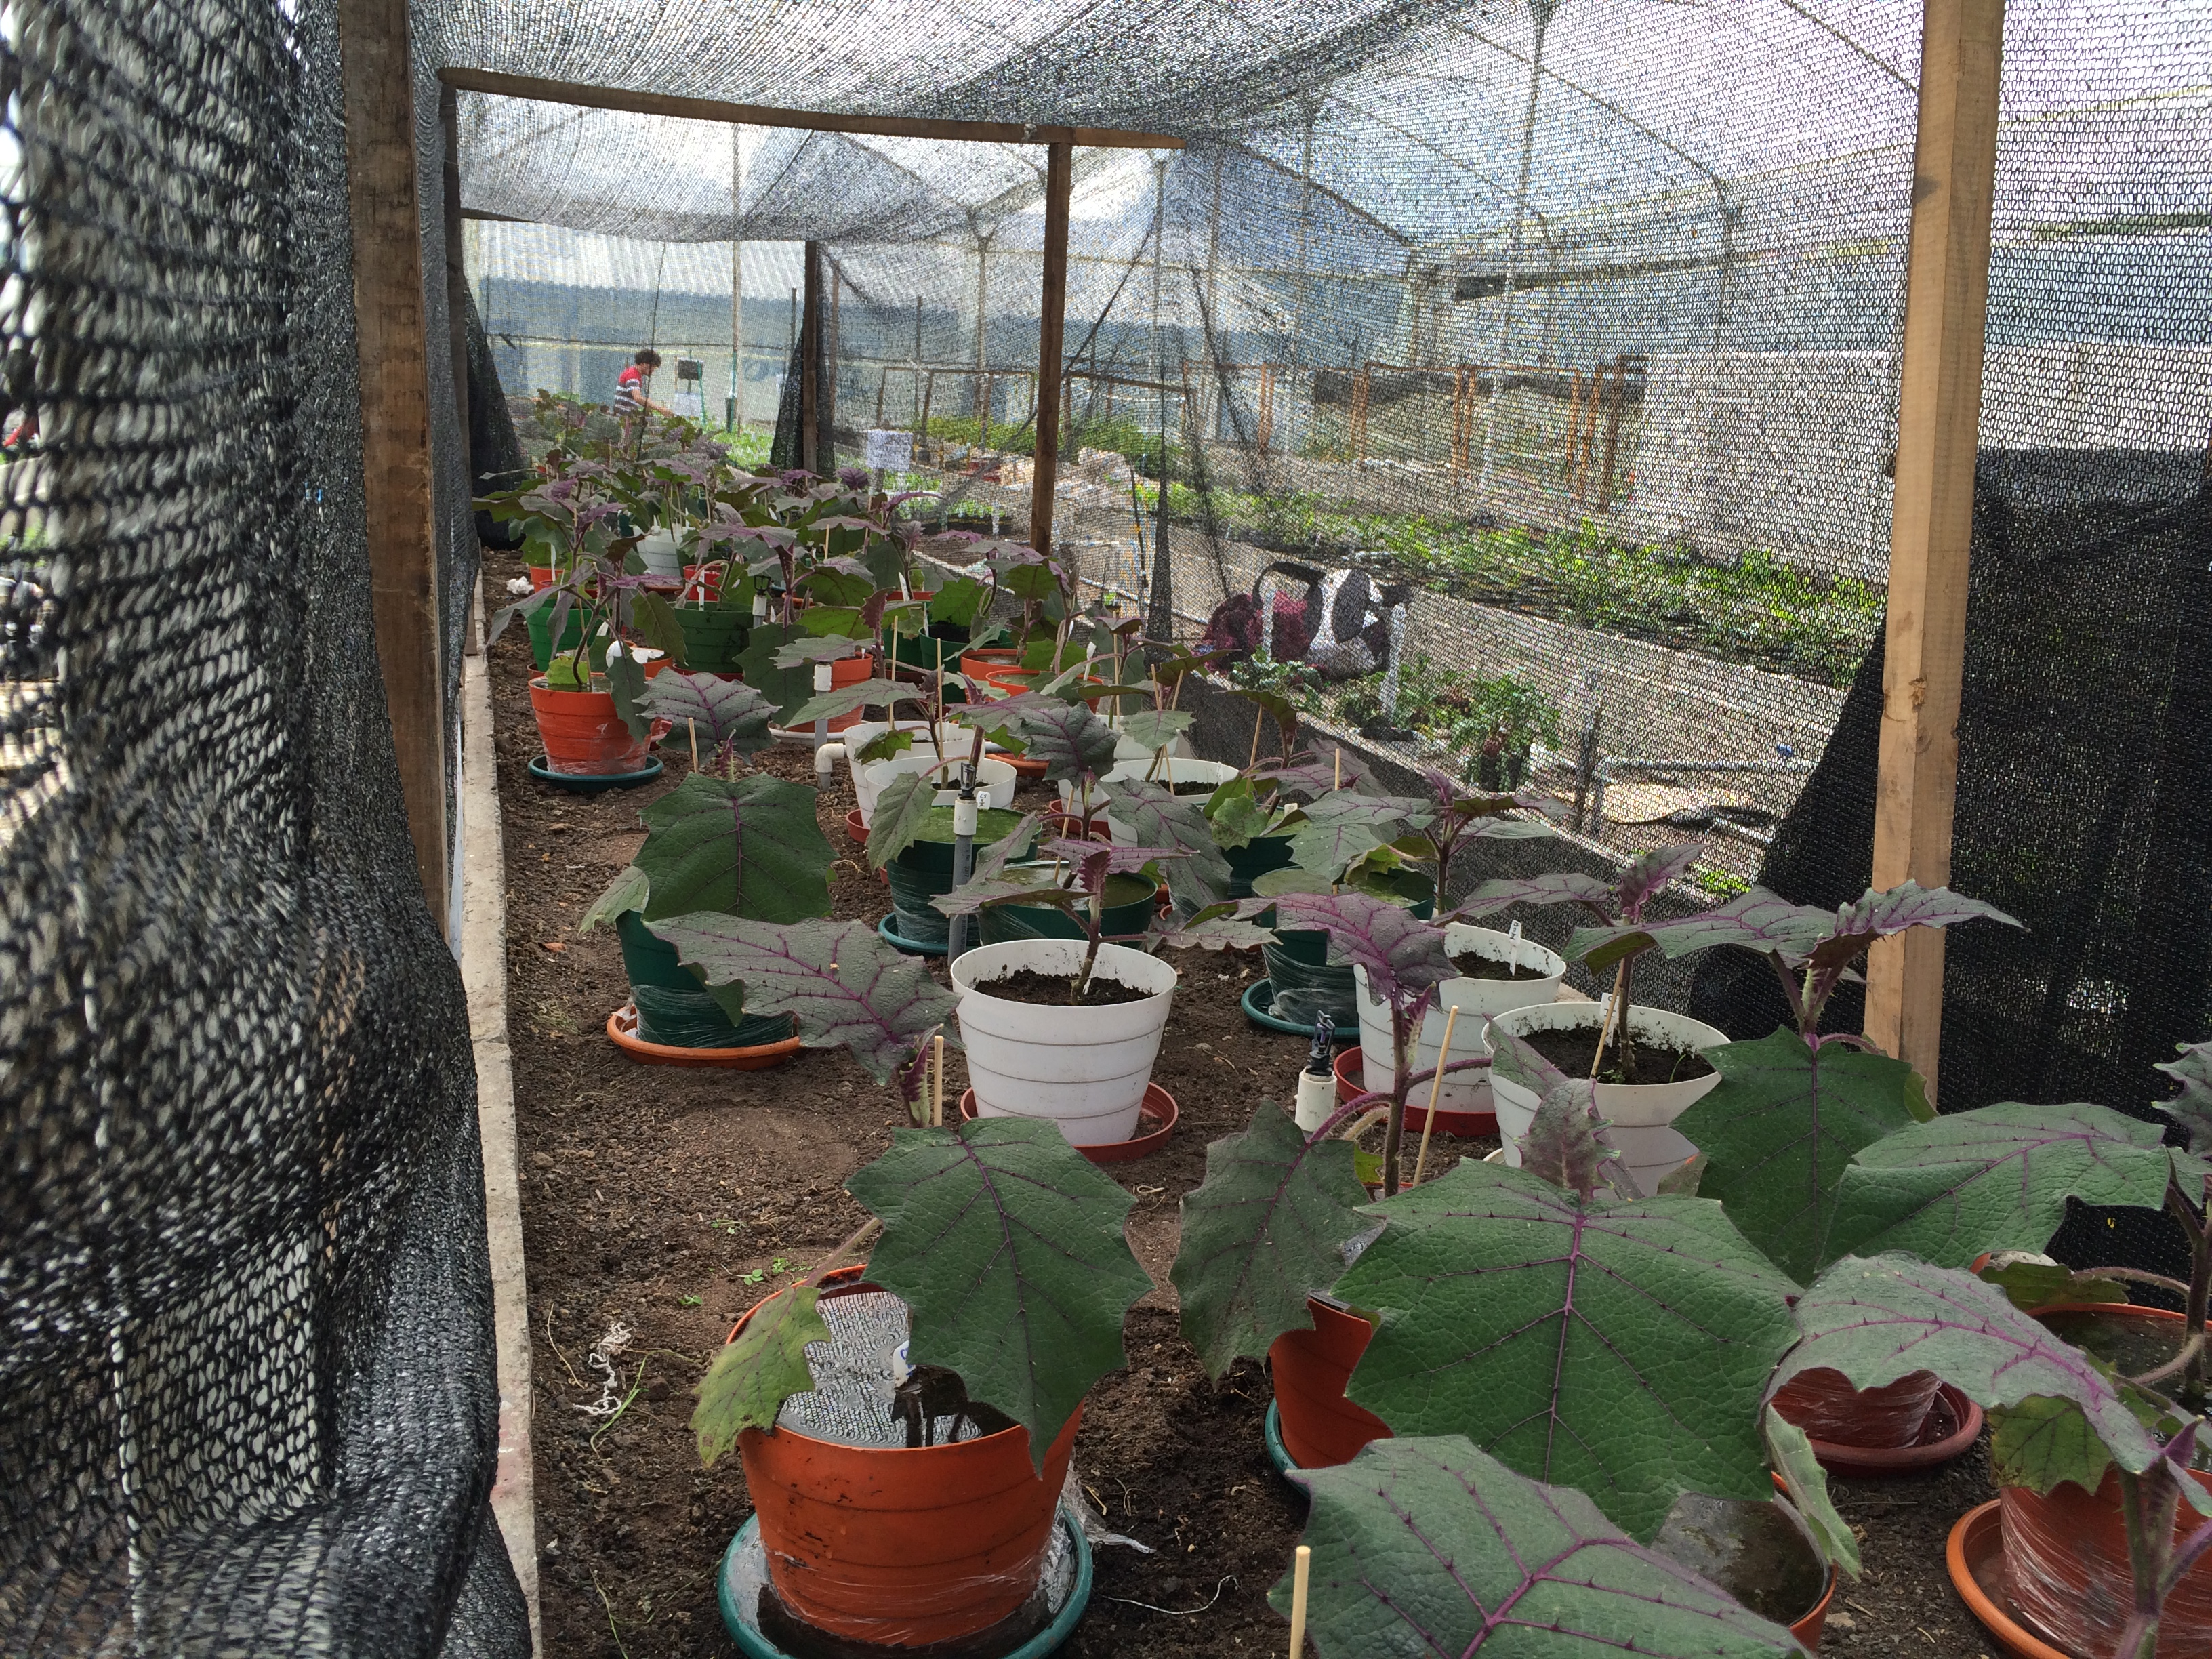 Experiment with lulo plants in greenhouse under shadow net. Photo: G. Fischer